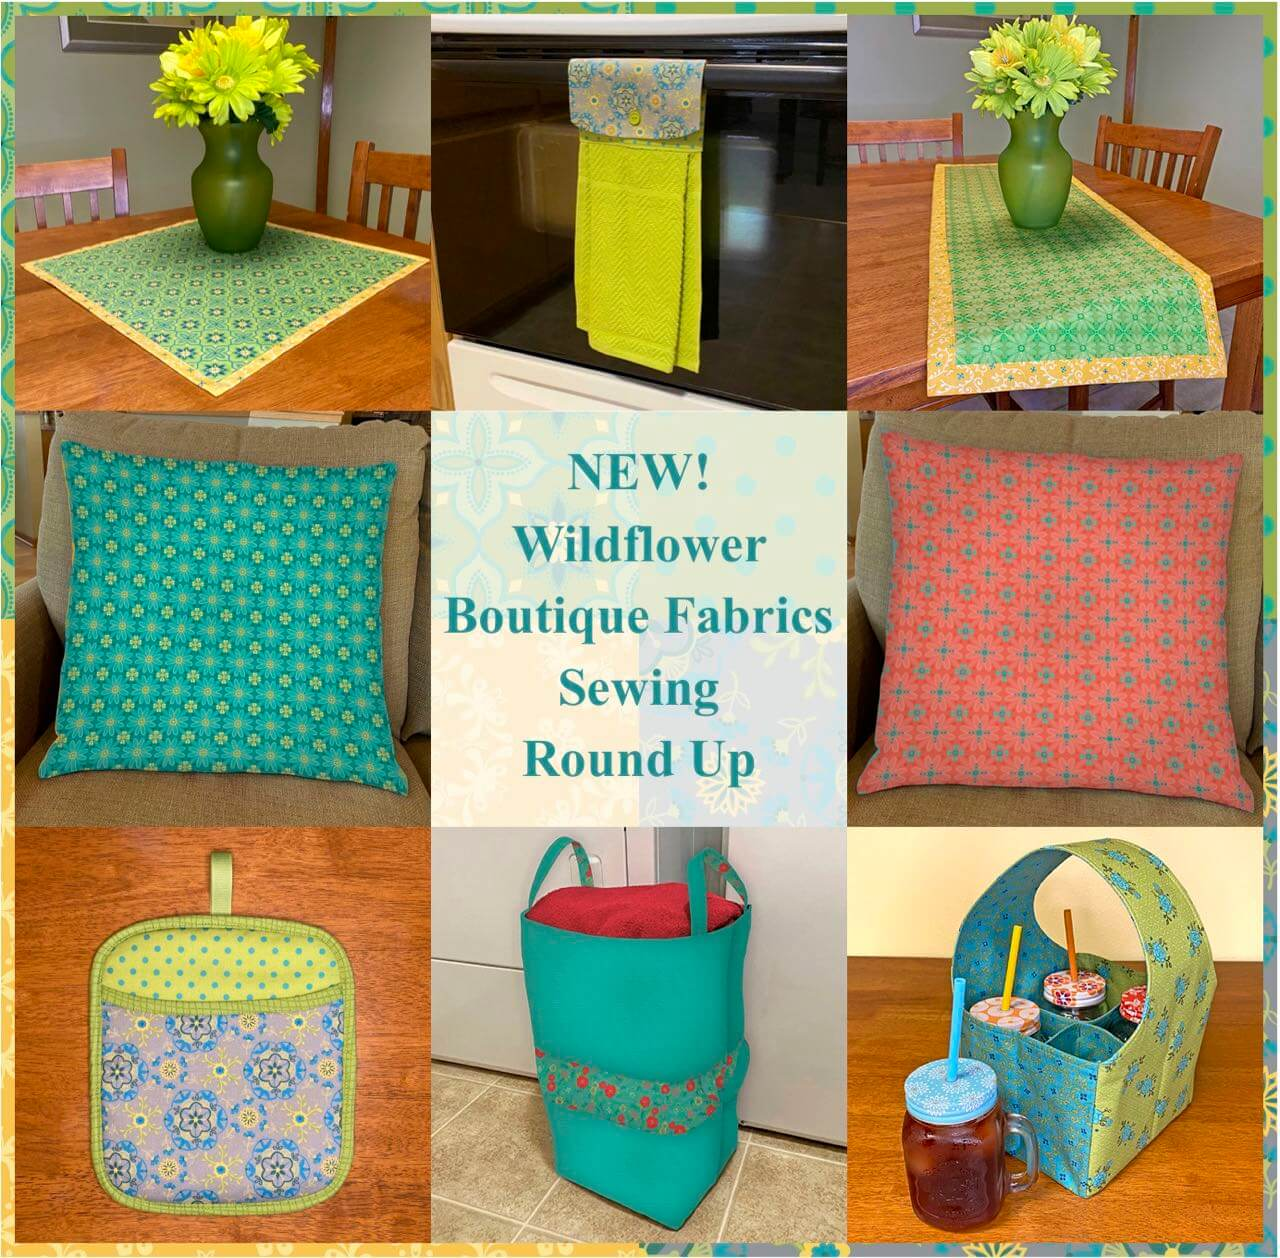 NEW! Wildflower Boutique Fabrics Sewing Round Up